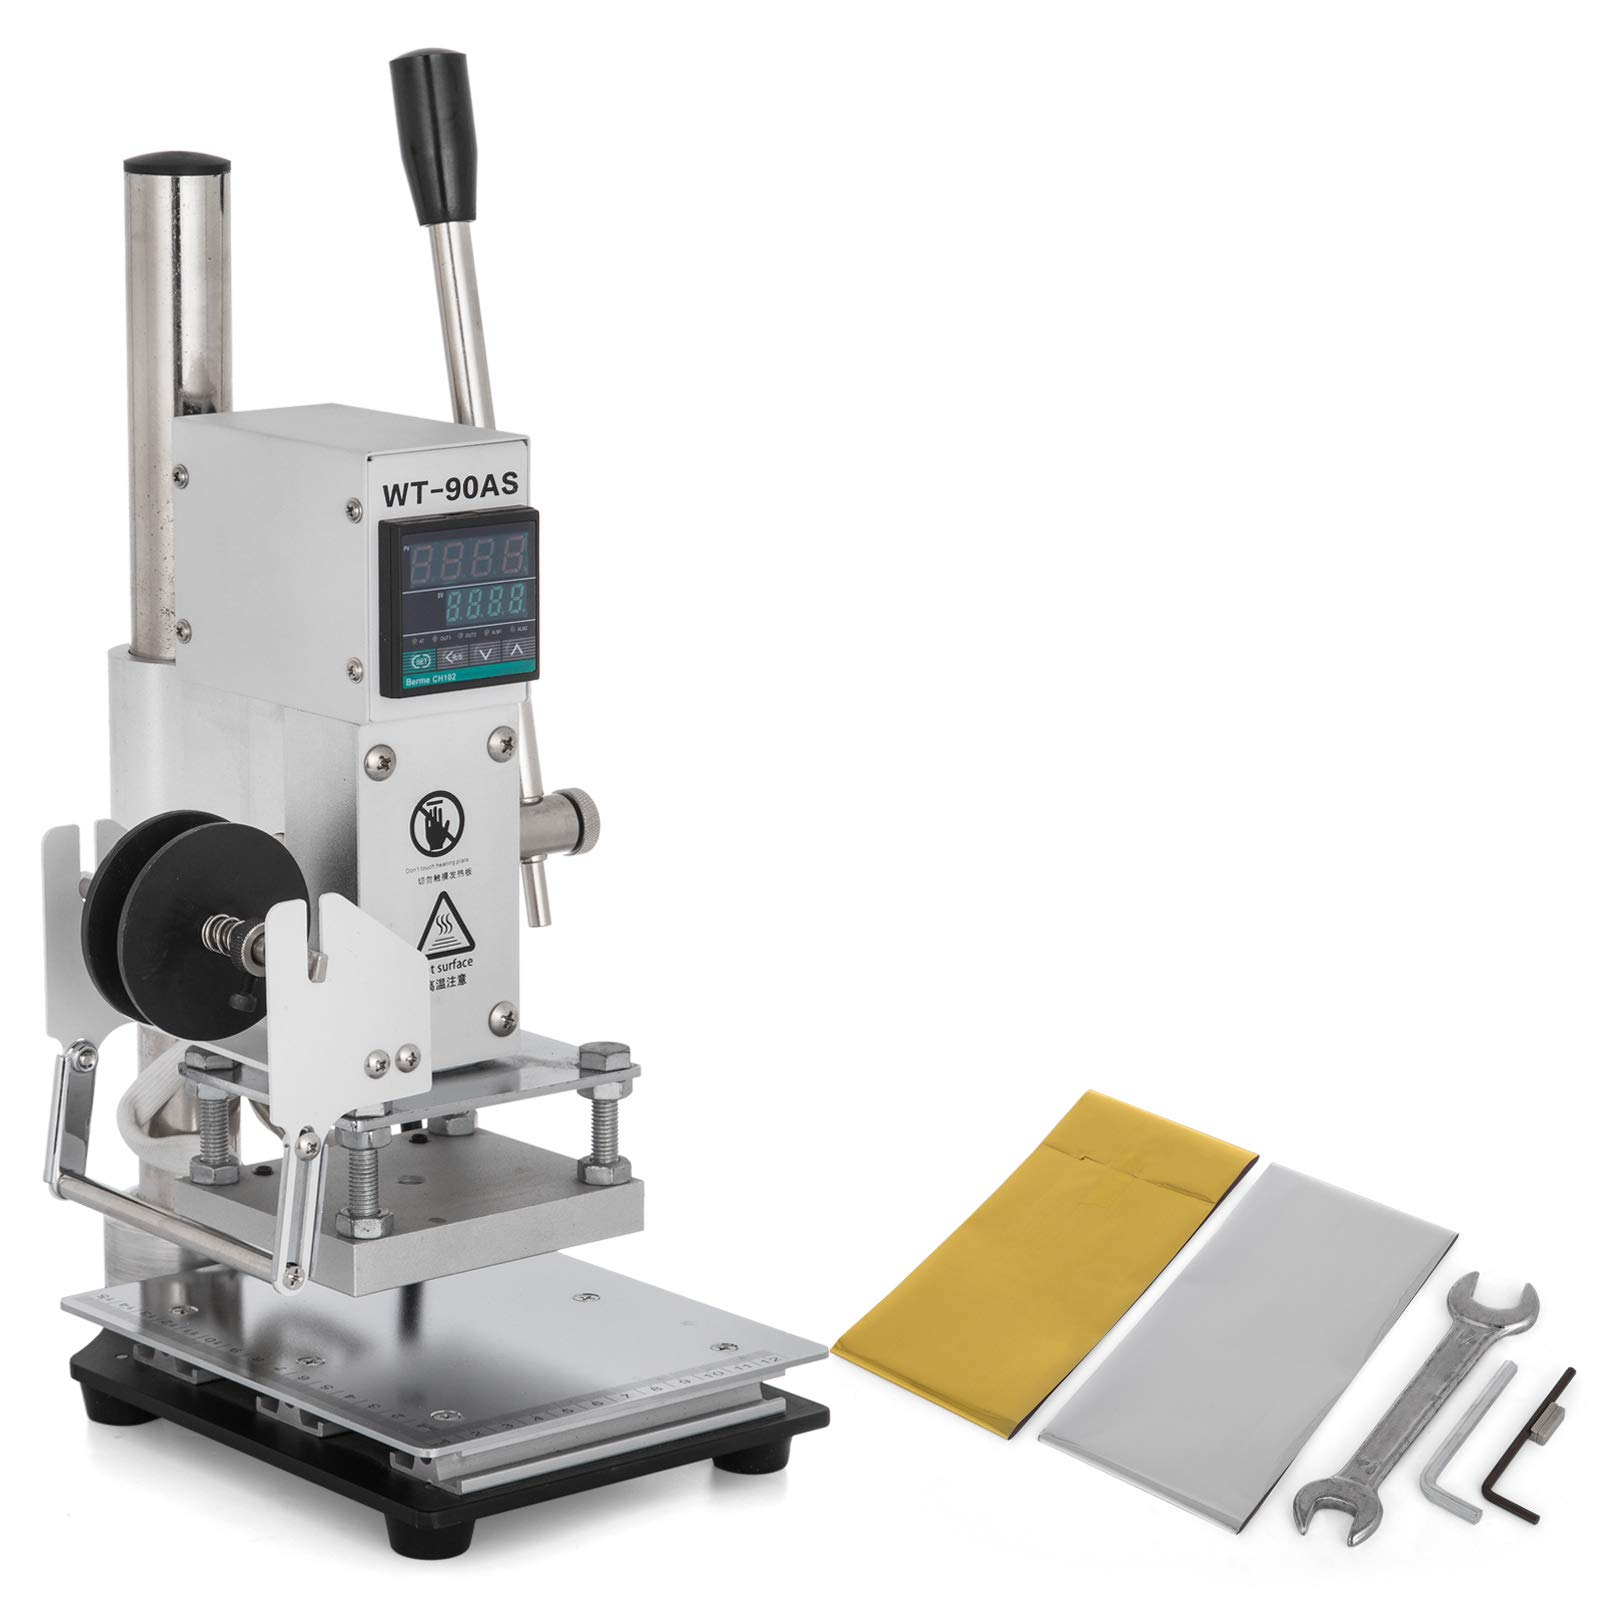 VEVOR Bronzing Machine 8x10cm Hot Foil Stamping Machine 110V with Bracket and Digital Display Stamping Machine for Leather PVC PU Wood